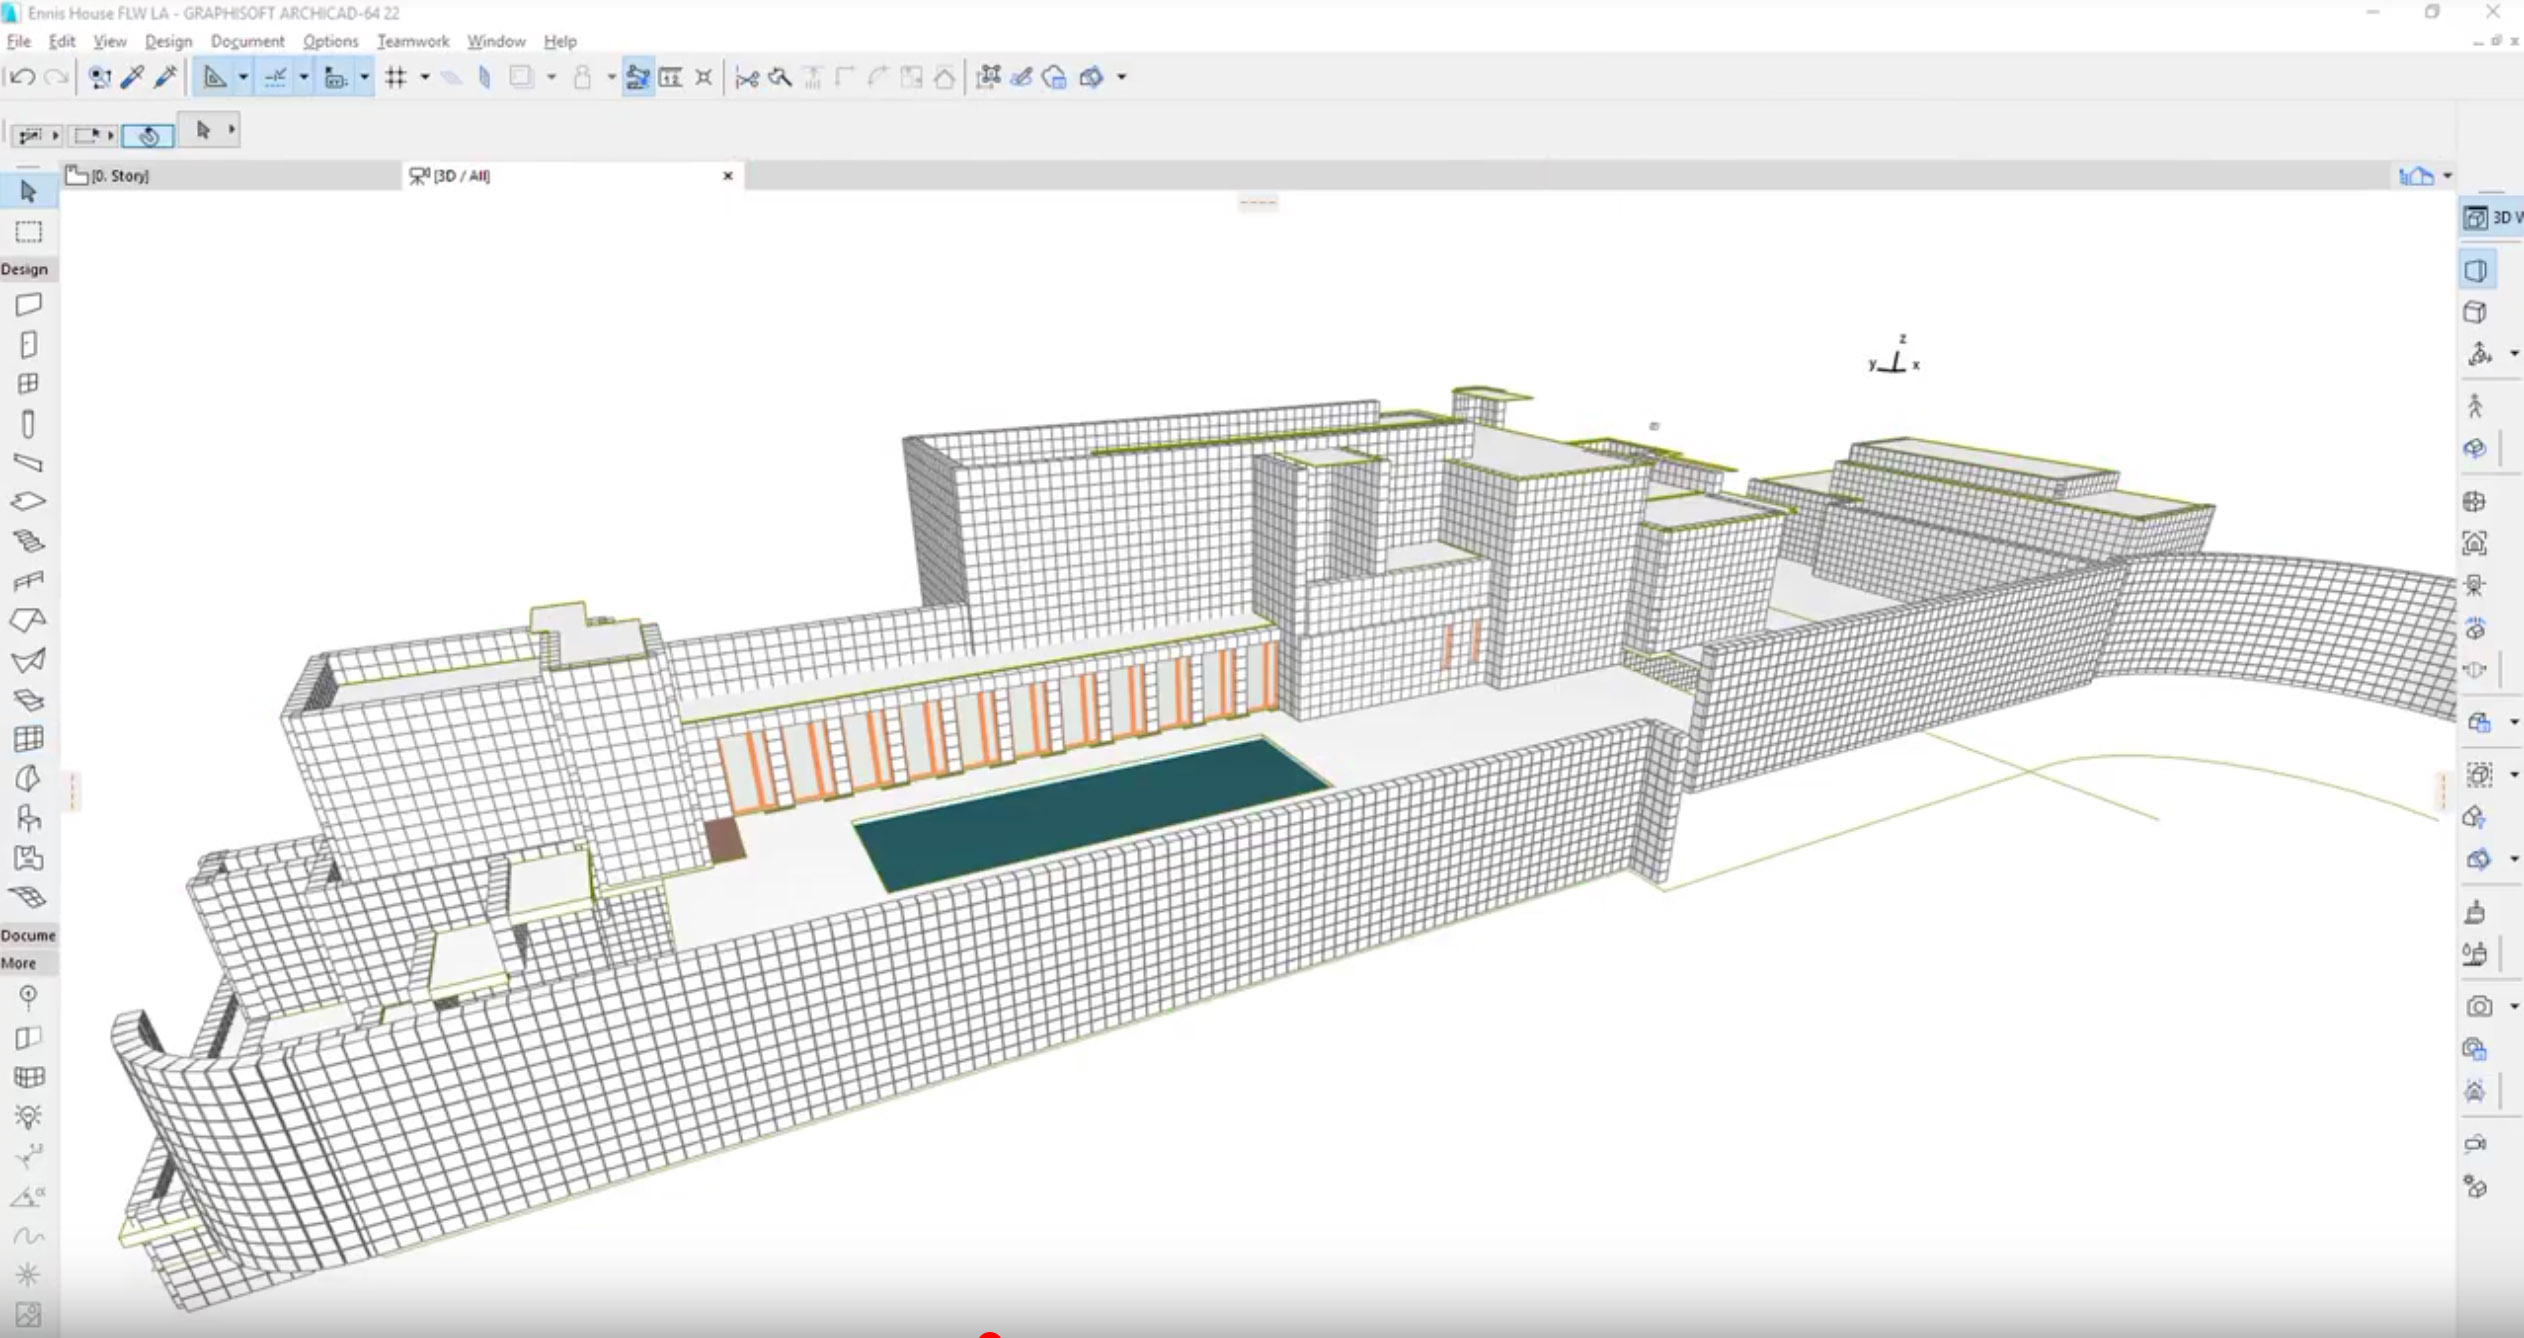 Classics Modeled in ARCHICAD – Frank Lloyd Wright's Ennis House